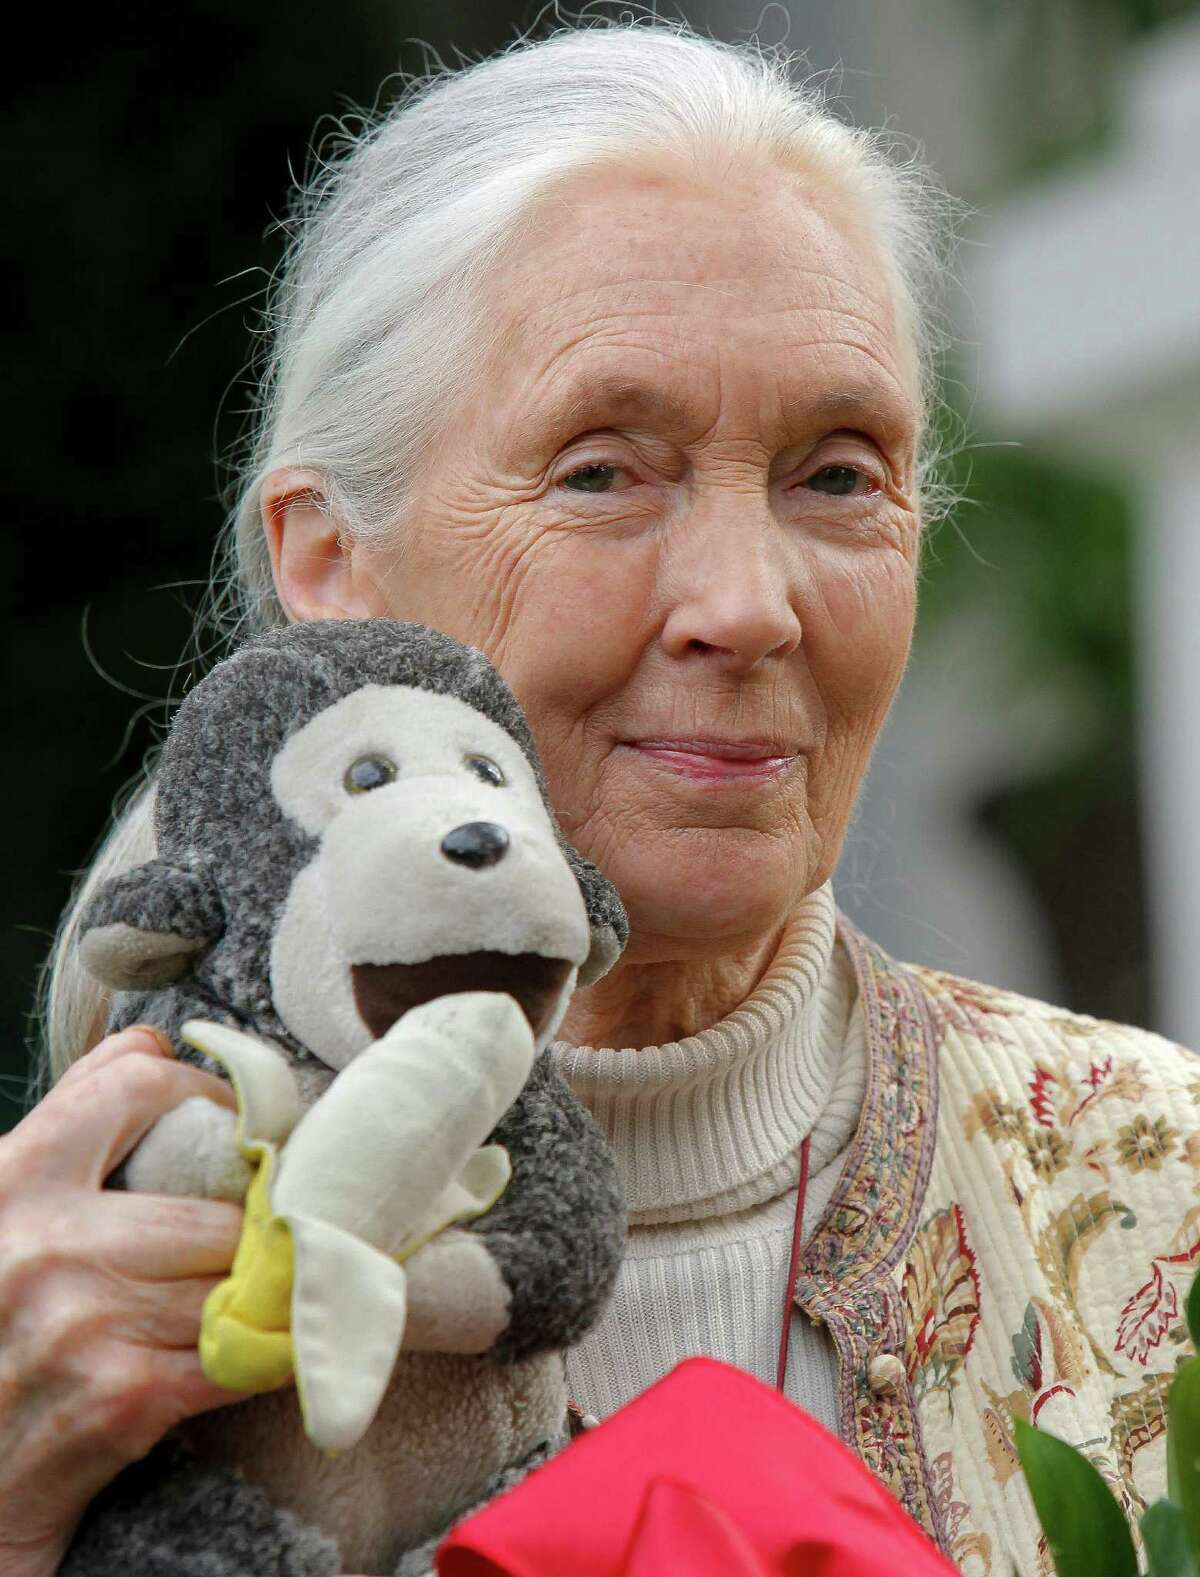 In this photo taken Wednesday April 25, 2012, chimpanzee expert Jane Goodall holds a monkey doll she carries with her wherever she travels, in Pasadena, Calif. A paramedic official says chimpanzees at a sanctuary for the animals in eastern South Africa bit and dragged a man at the reserve, badly injuring him. In a statement, Jeffrey Wicks of the Netcare911 medical emergency services company said the man he described as a ranger was leading a tour group at the Jane Goodall Institute Chimpanzee Eden Thursday June 28, 2012 when two chimpanzees grabbed his feet and pulled him under a fence into their enclosure. The international institute founded by primatologist Jane Goodall opened the sanctuary in 2005. It is a home to chimpanzees rescued from further north in Africa, where they are hunted for their meat or held captive as pets.(AP Photo/Nick Ut-file)